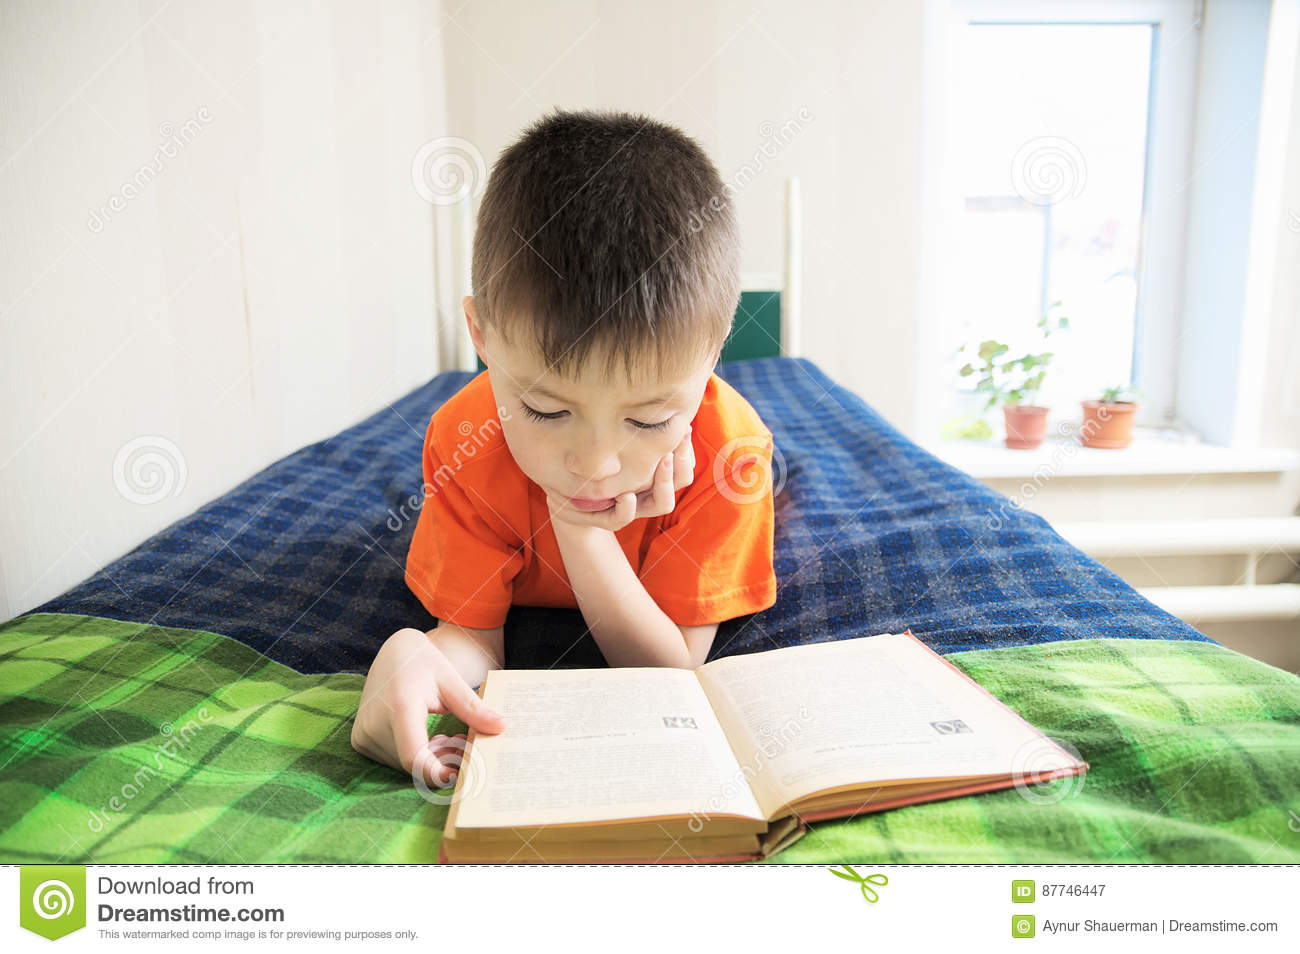 Children education, boy reading book lying on bed, child portrait smiling with book, interesting storybook